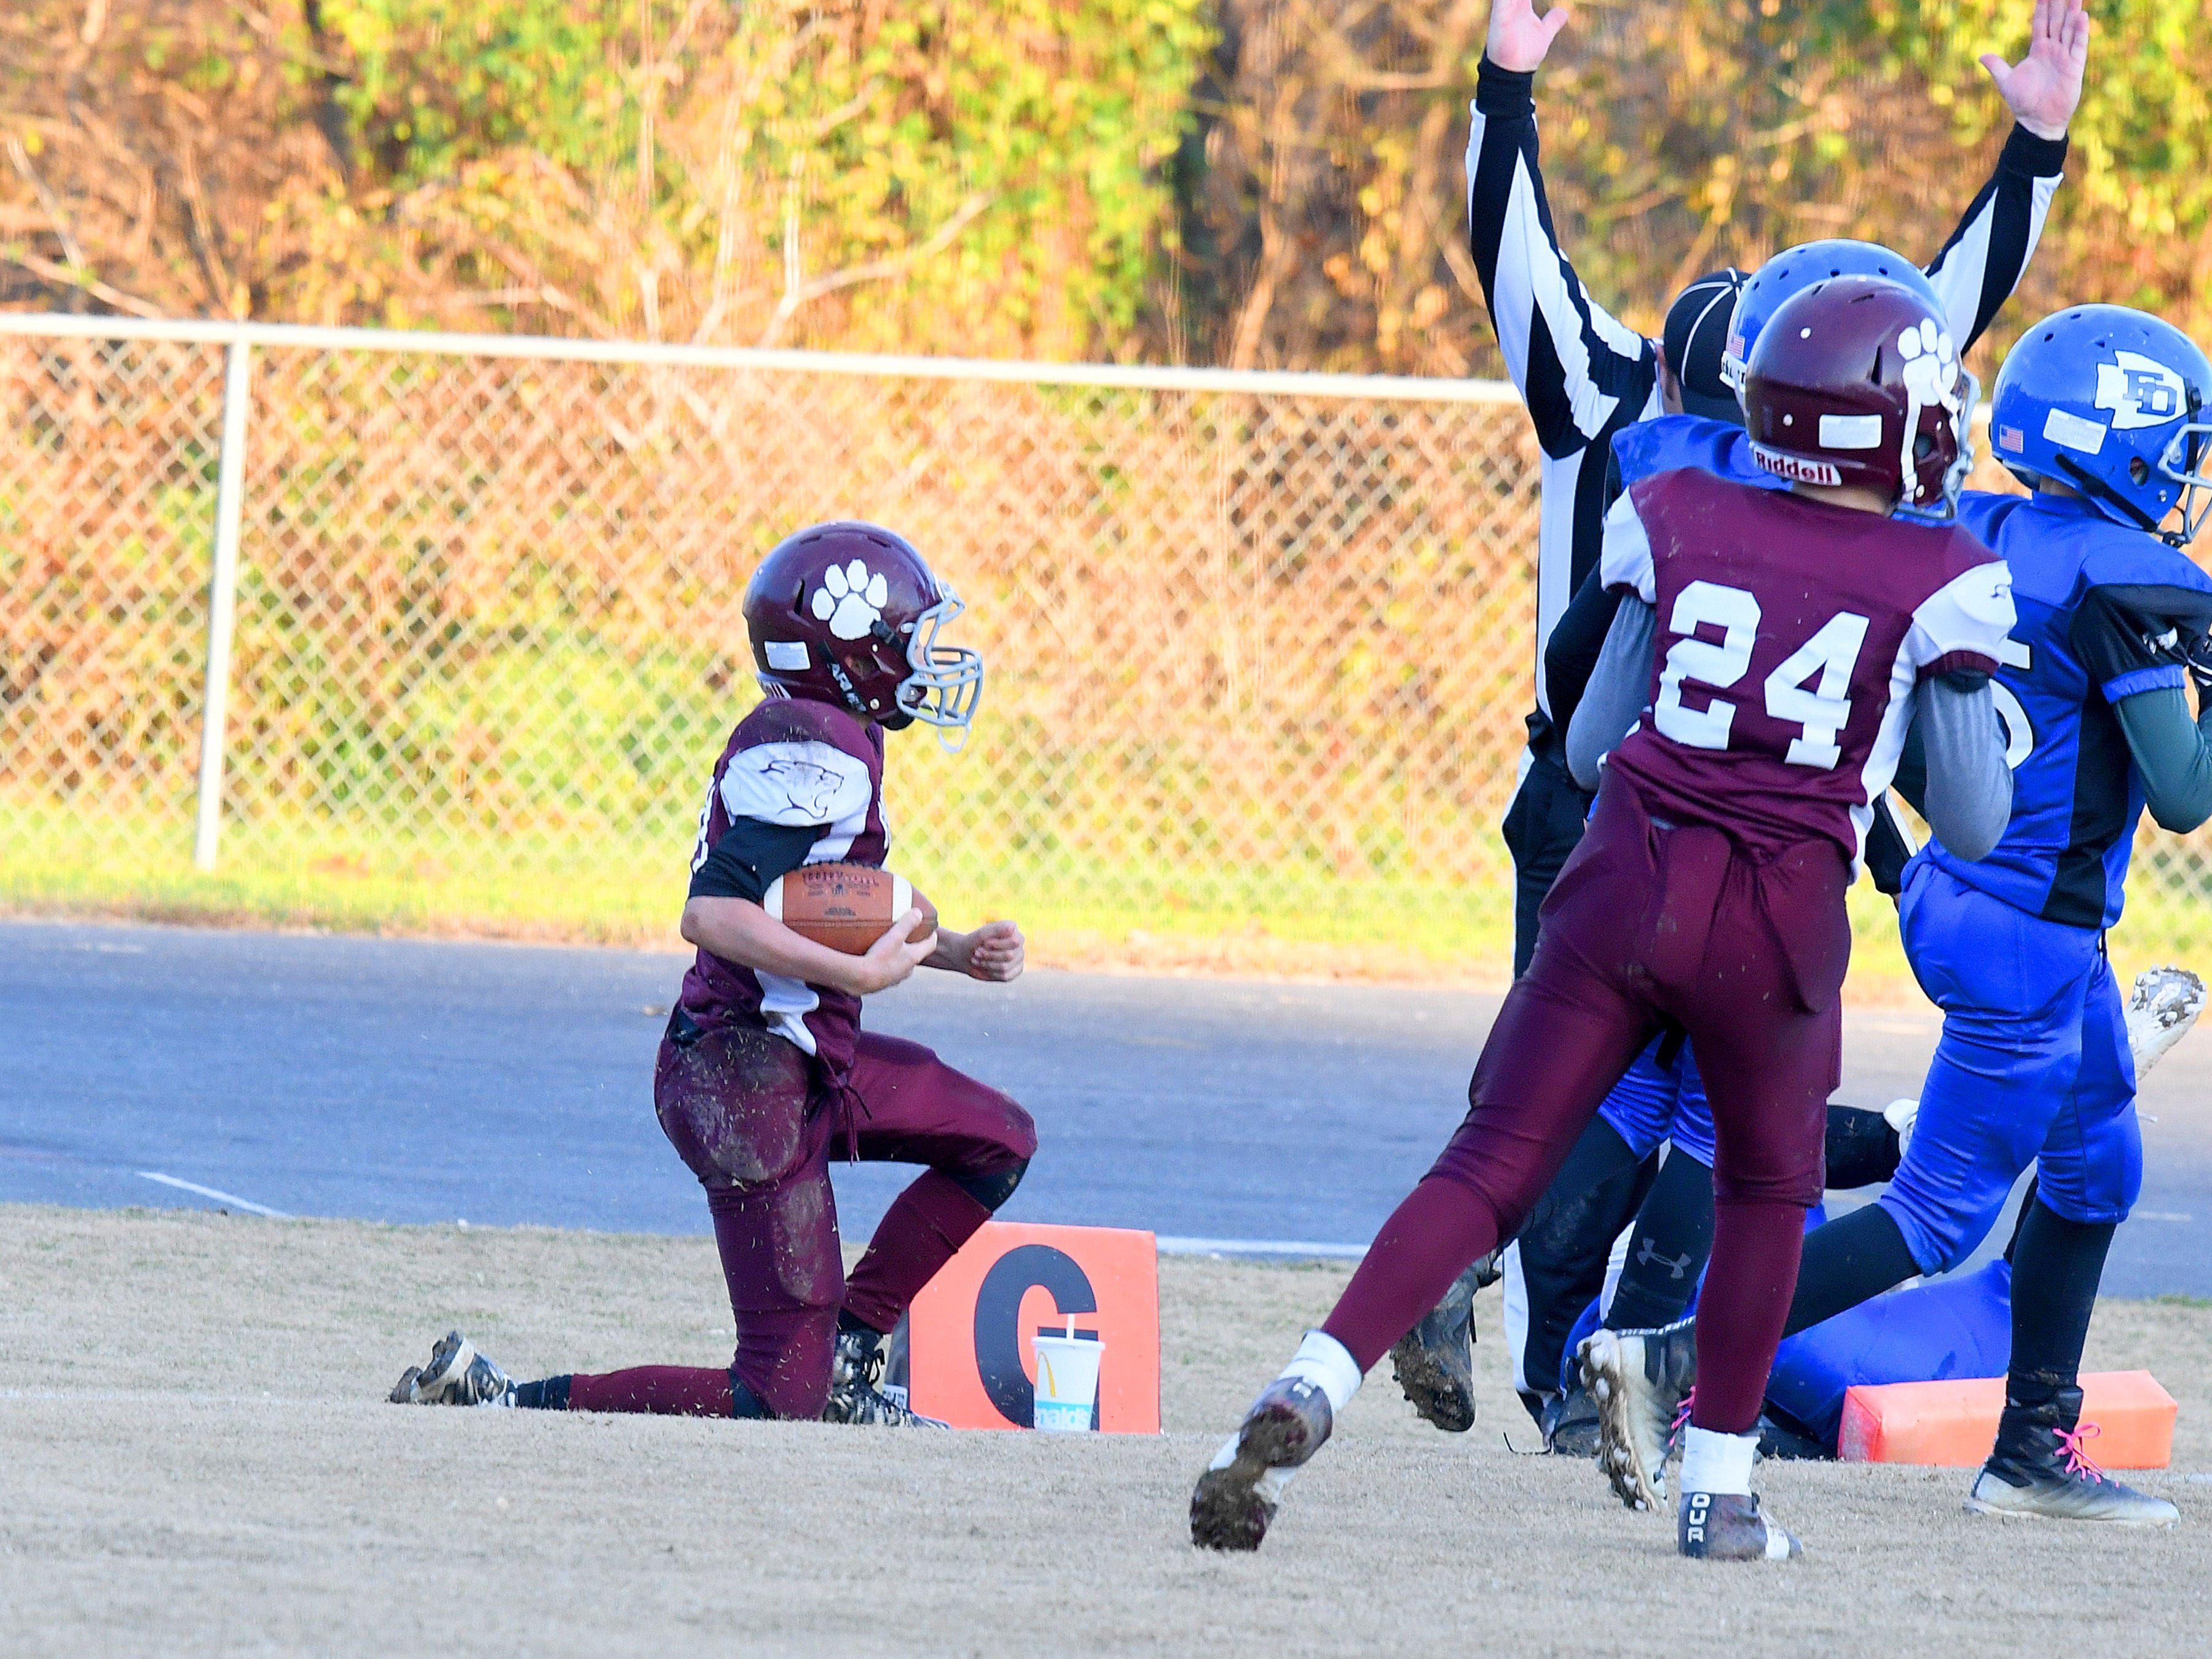 Stuarts Draft's Landon Graber makes it into the end zone for a touchdown during the Augusta County Quarterback Club Juniors Super Bowl in Fishersville on Sunday, Nov. 11, 2018.  Fort Defiance beats Stuarts Draft, 13-12.